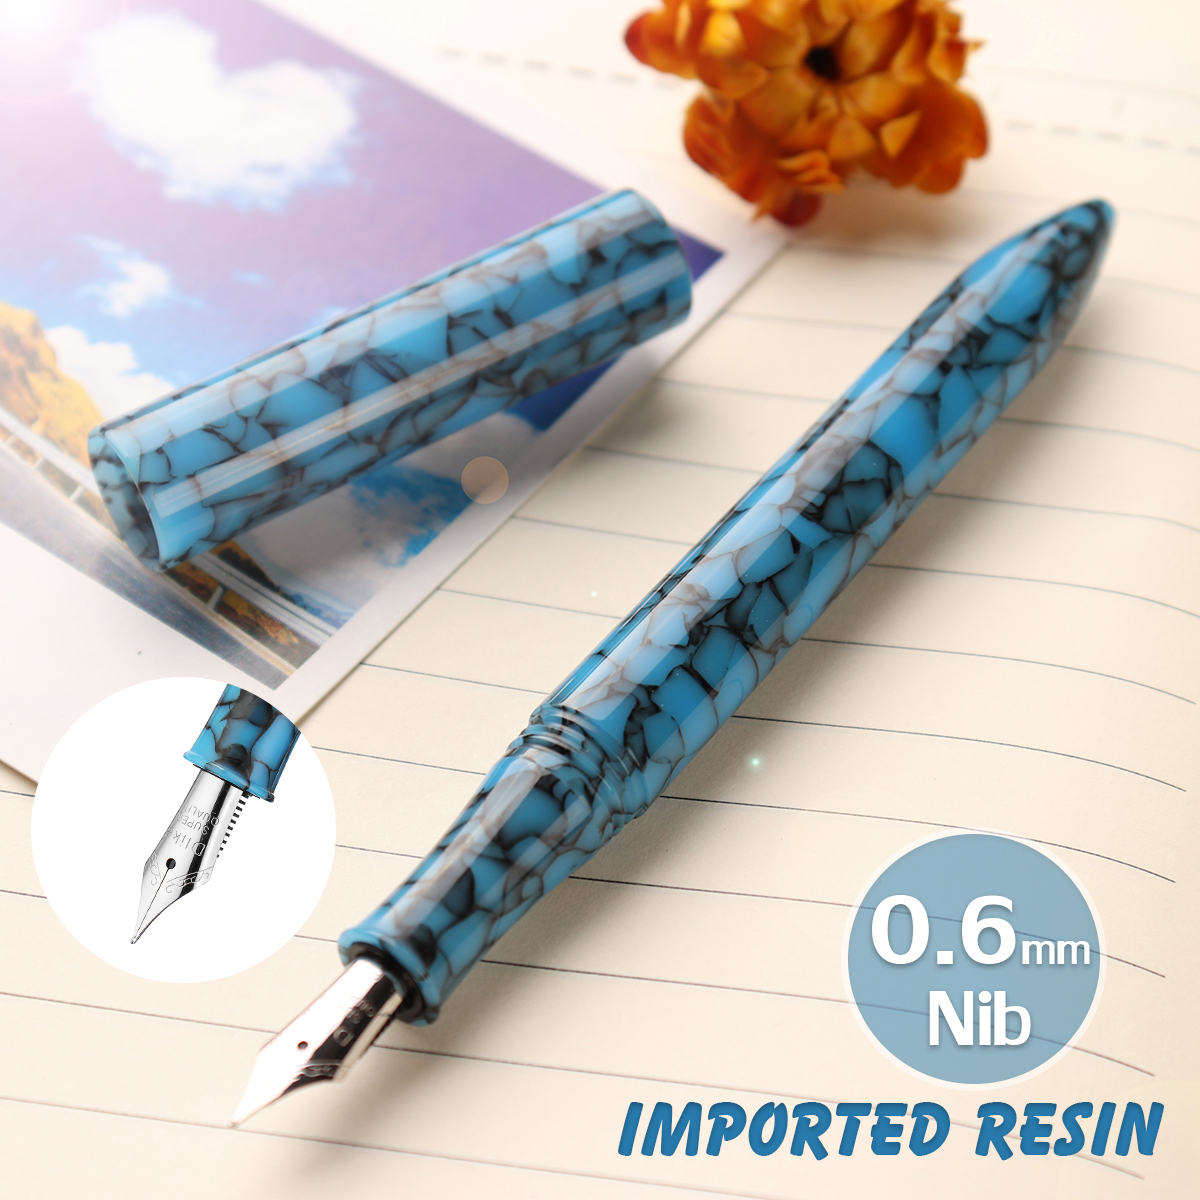 Delike 0.6mm Nib Resin Fountain Pen Rotating Ink Calligraphy Writing With Box For Office School